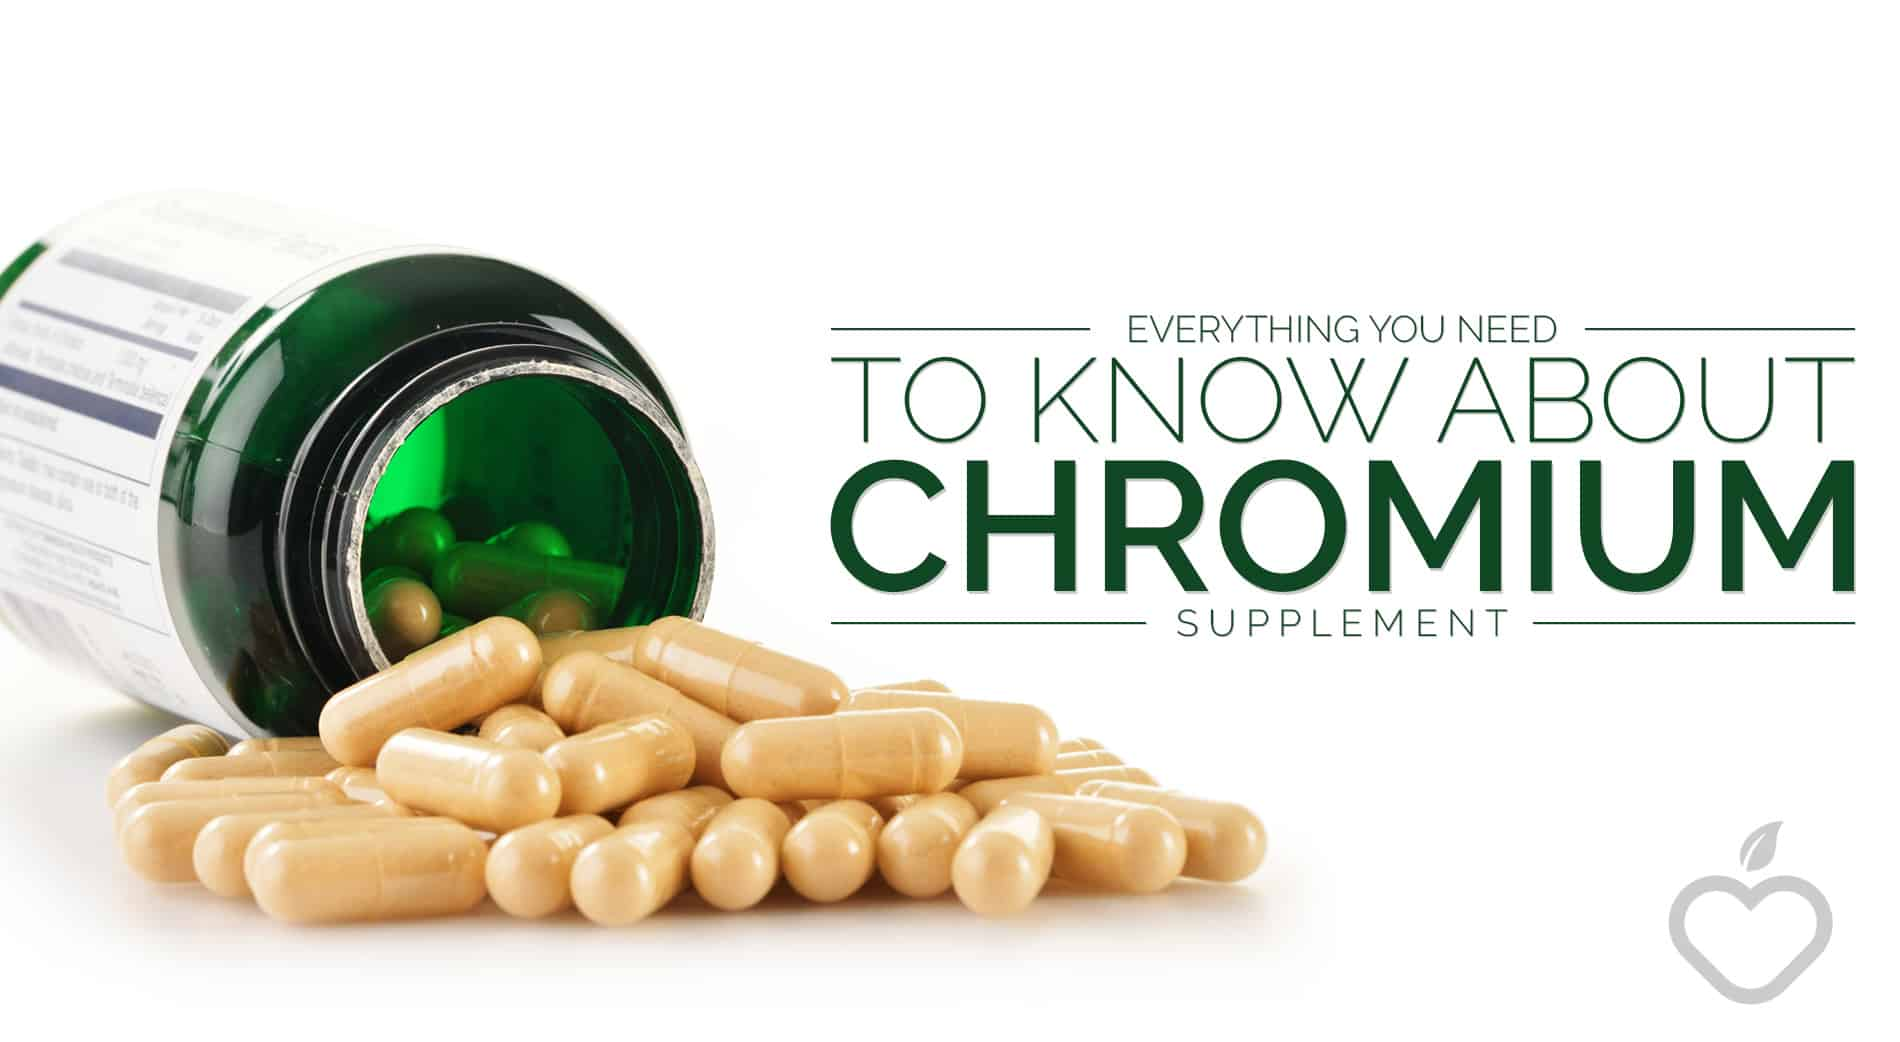 Chromium Supplement Image Design 1 - Everything You Need to Know About Chromium Supplement